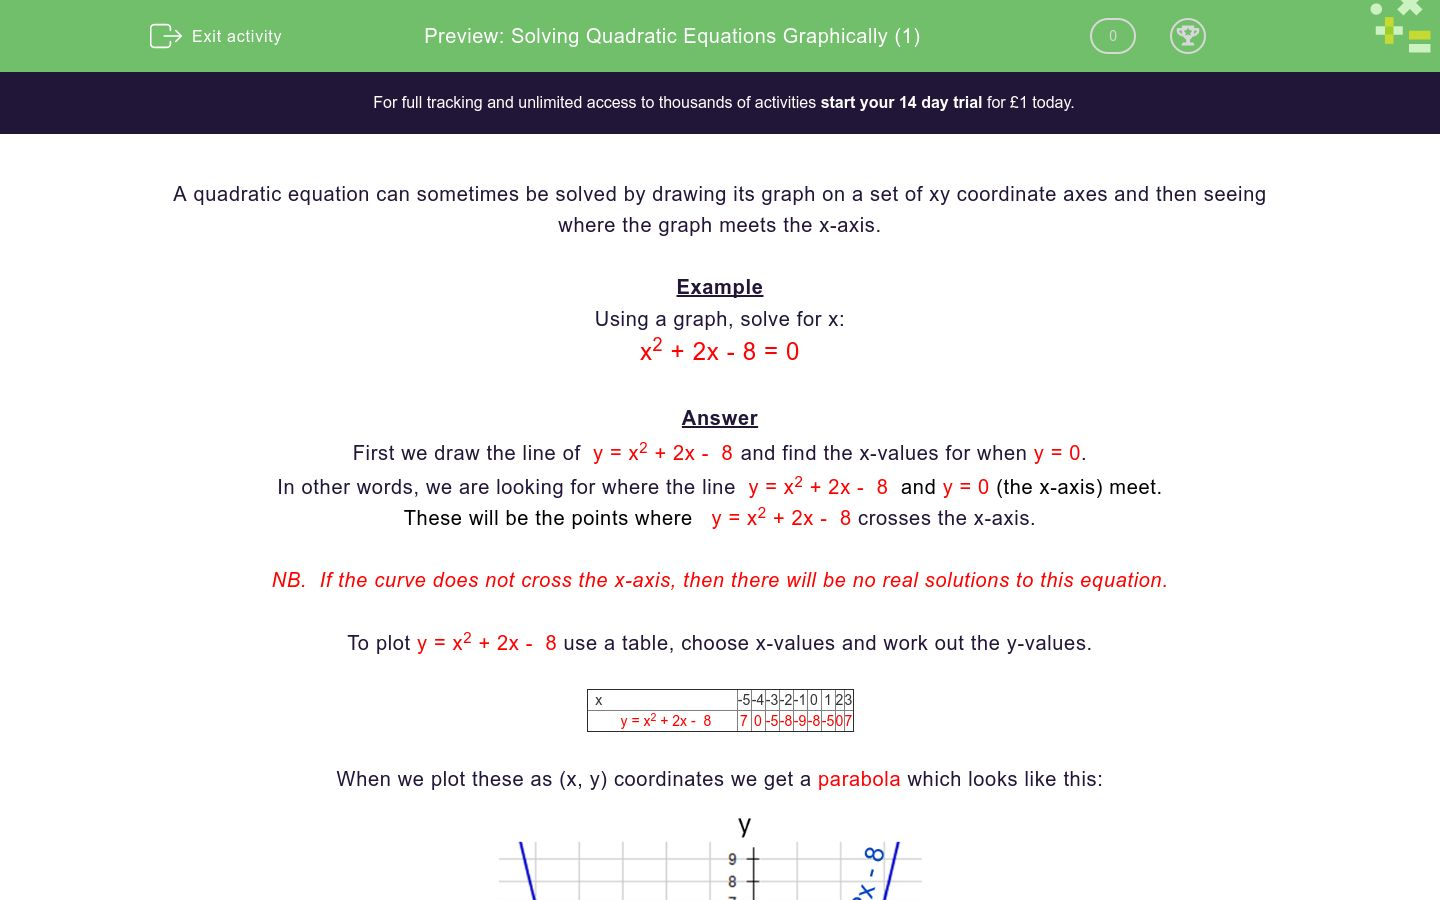 Solving Quadratic Equations Graphically  1  Worksheet   Elace further Solving Multi Step Equations Worksheet Worksheet Works Solving Multi as well Solving For X Worksheets Math Literal Equations Worksheet 1 Answer in addition Solving Equations Worksheets   math   Solving linear equations as well Alge Equations   Worksheet   Education in addition Alge 1 Worksheets   Equations Worksheets further Solving For X Worksheets Equations Printable Algeic Grade likewise  additionally Solving Linear Equations    Form x a ± b   c  A likewise Two Step Variable Equations Worksheets Free Solve For X Math Multi as well Free worksheets for linear equations  grades 6 9  pre alge likewise Solving for X Worksheets   Homedressage furthermore alge 1 worksheets solving equations – spechp info together with Image result for solving addition and subtraction equations in addition Alge Worksheets   Free    monCoreSheets in addition Alge 1 Worksheets   Equations Worksheets. on solve for x equations worksheet